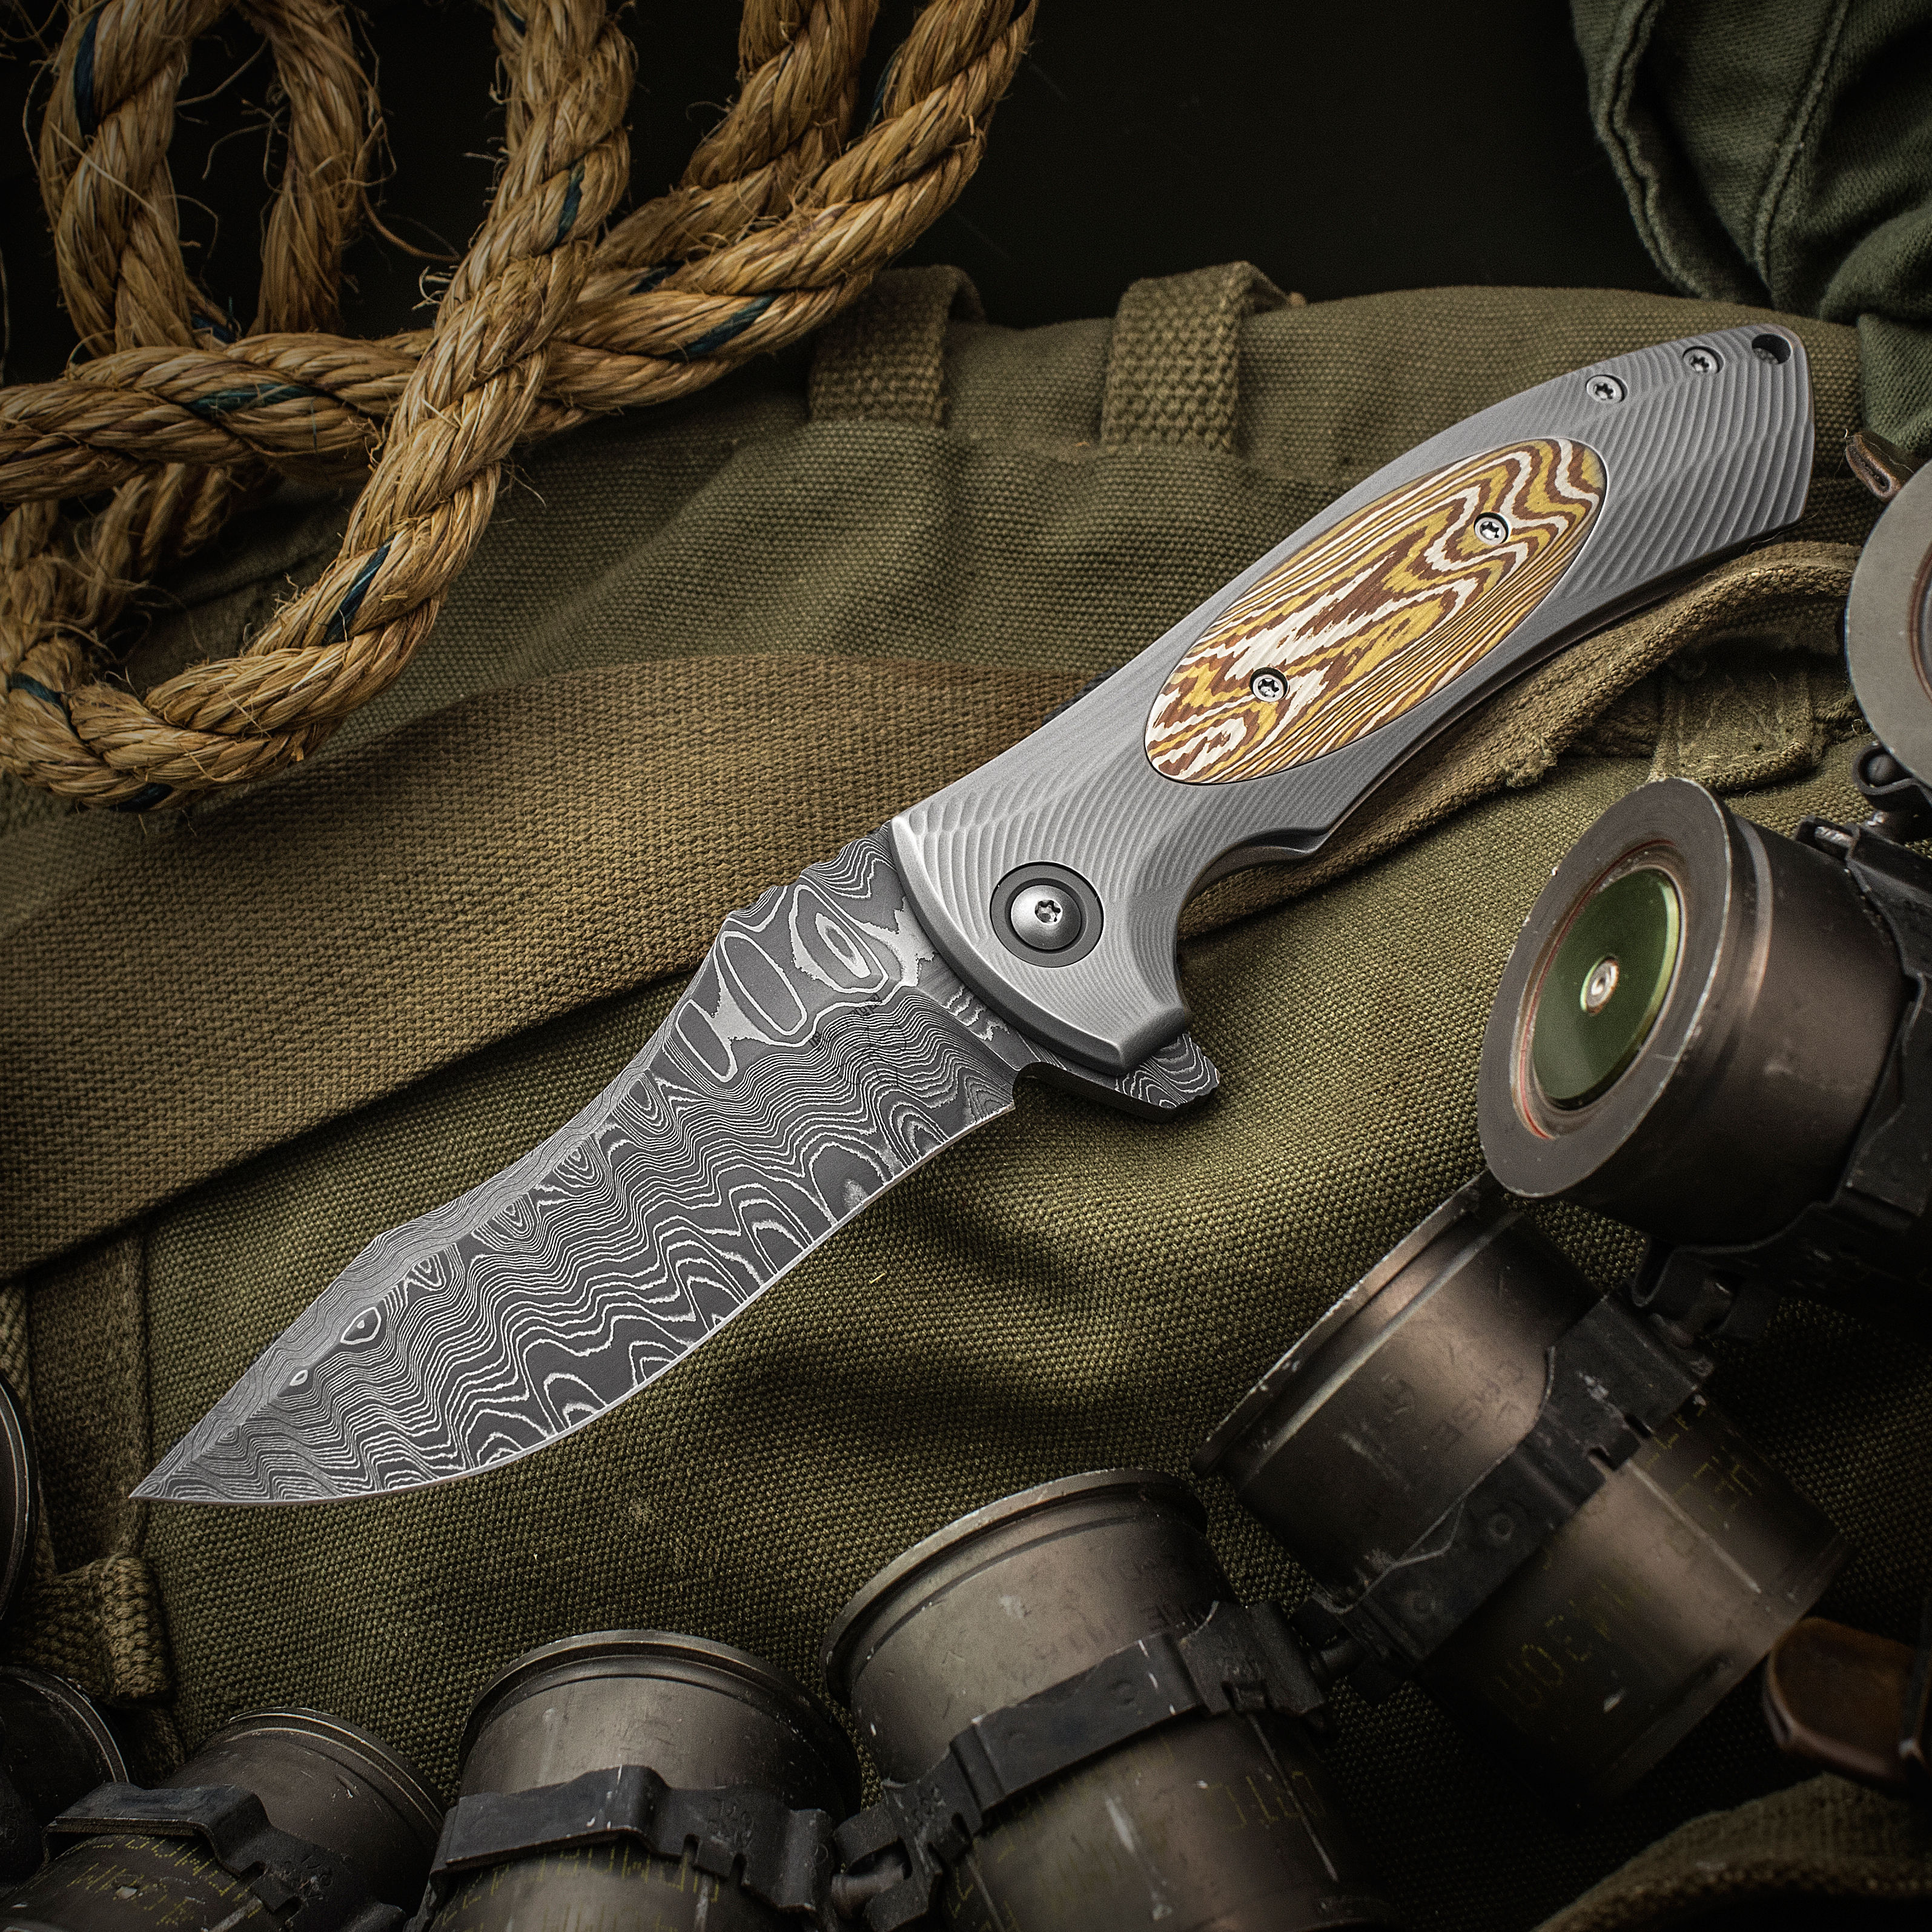 Les George Custom Harpy Flipper 4.25 inch Nichols Fade Damascus Blade, 3D Machined Titanium Handles with Mokume Inlay